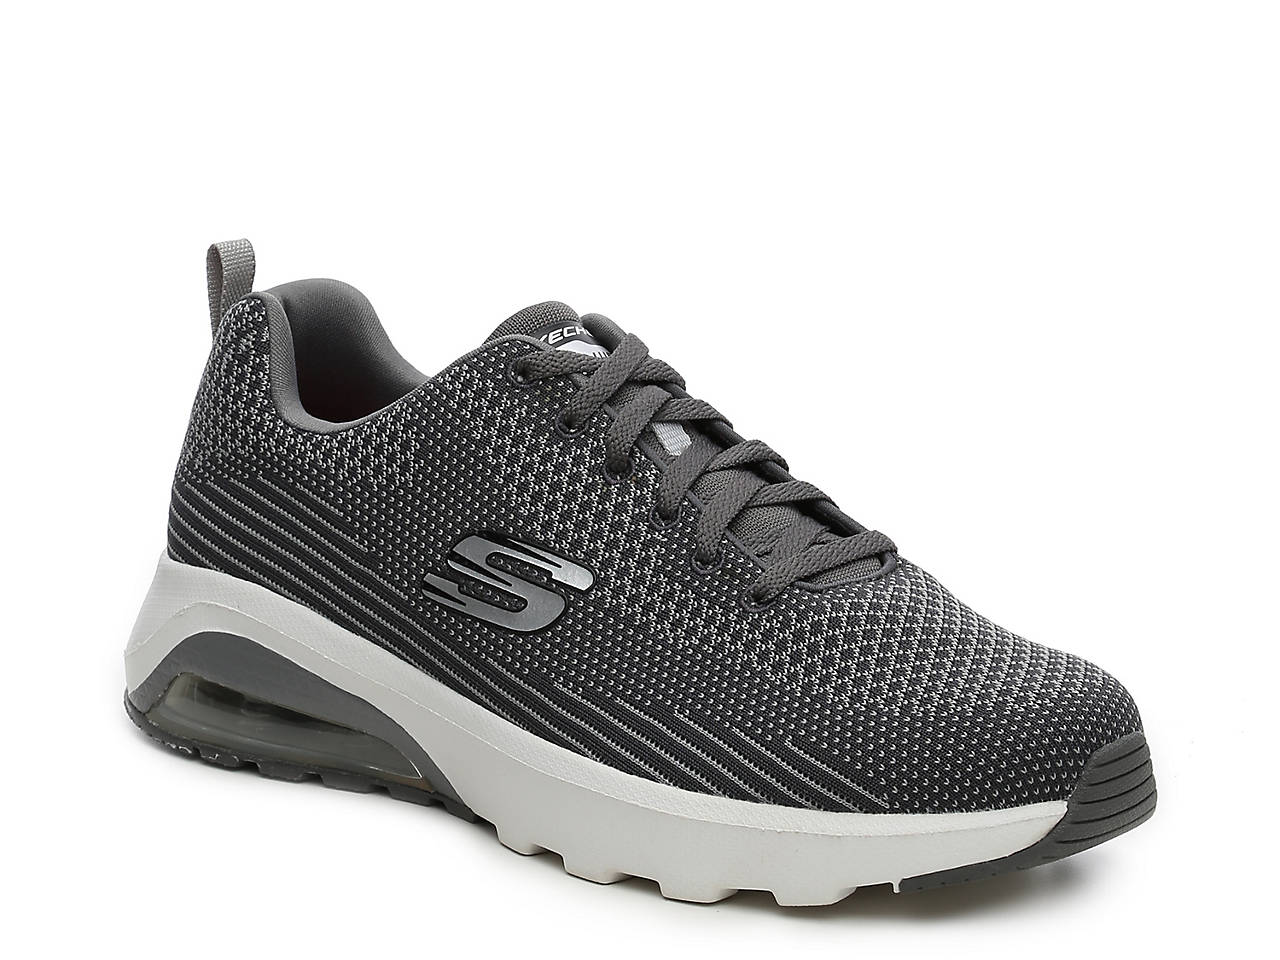 Skechers Skech-Air Varsity